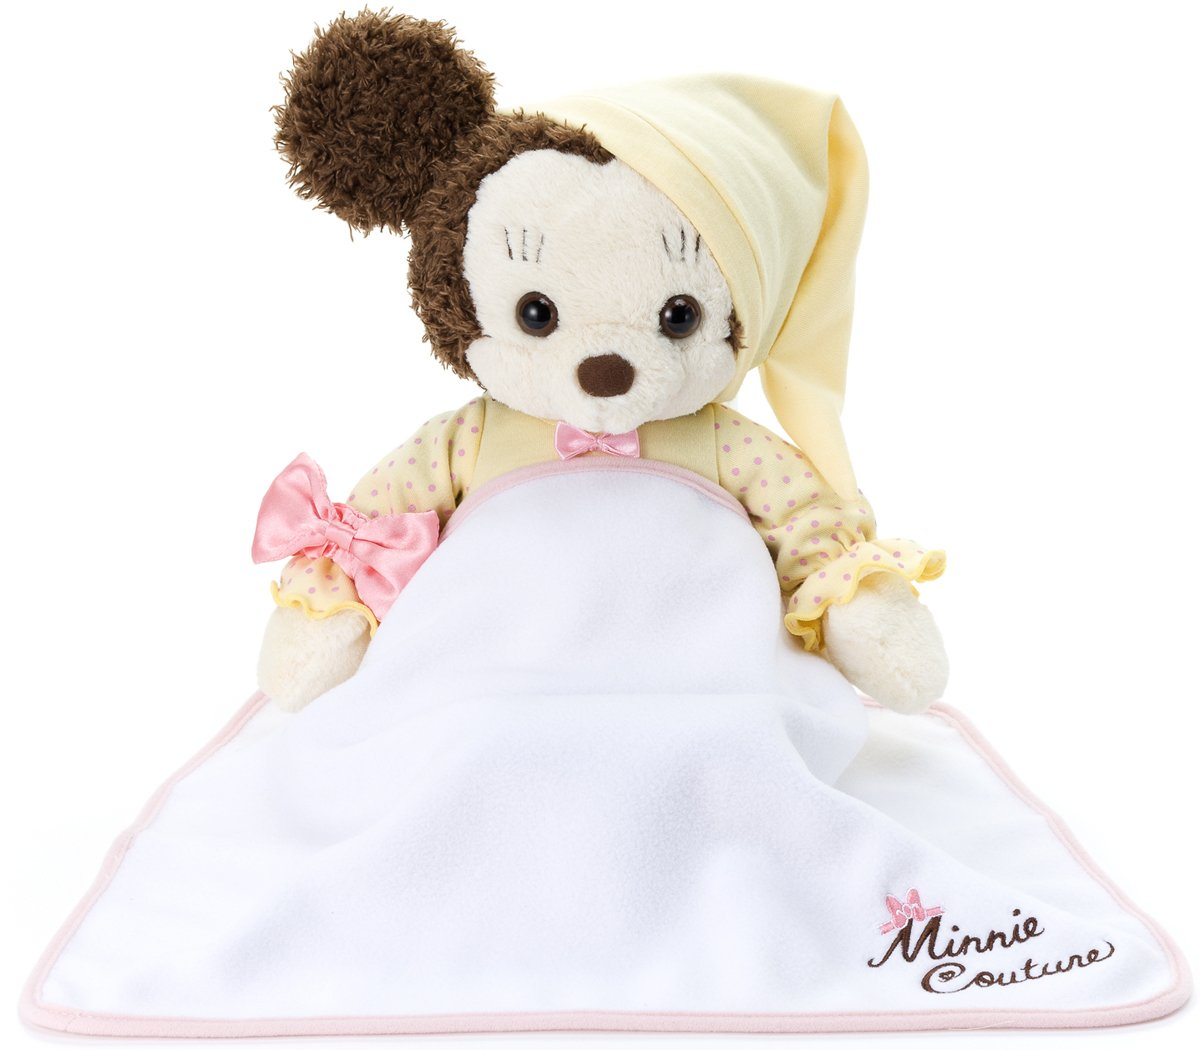 Minnie Couture accessories accessory blanket (japan import)